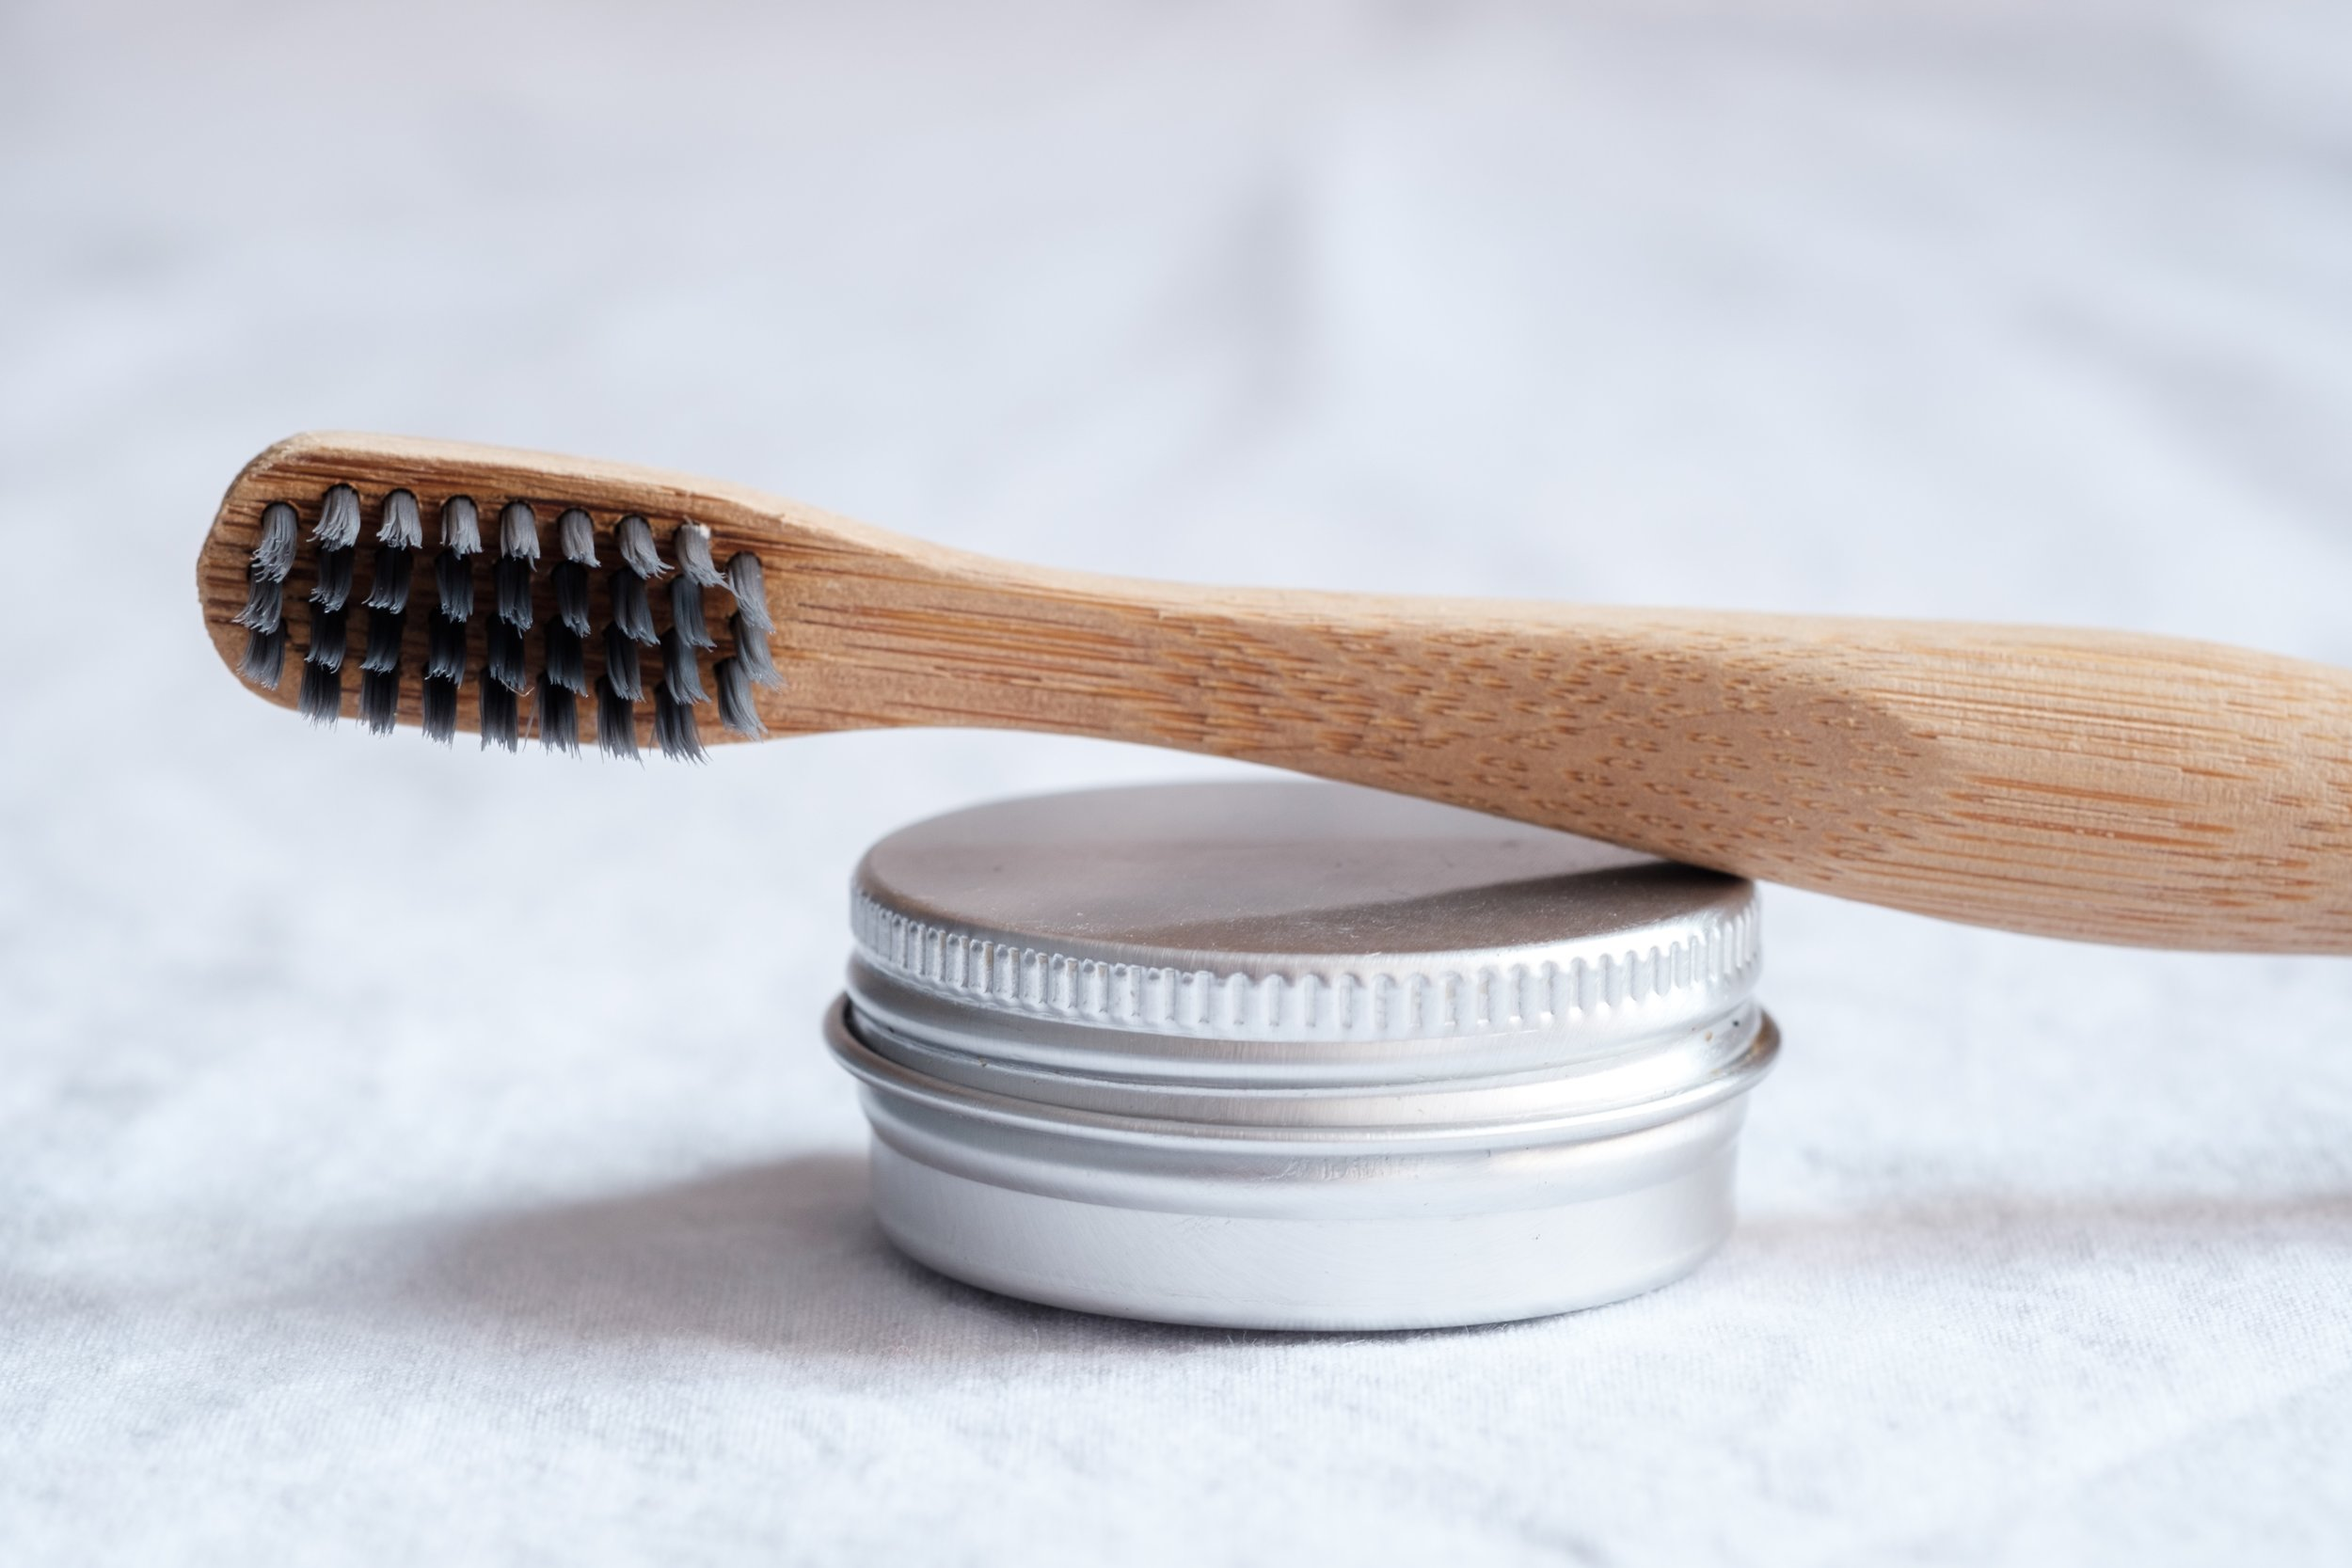 bamboo toothbrush on top of tin